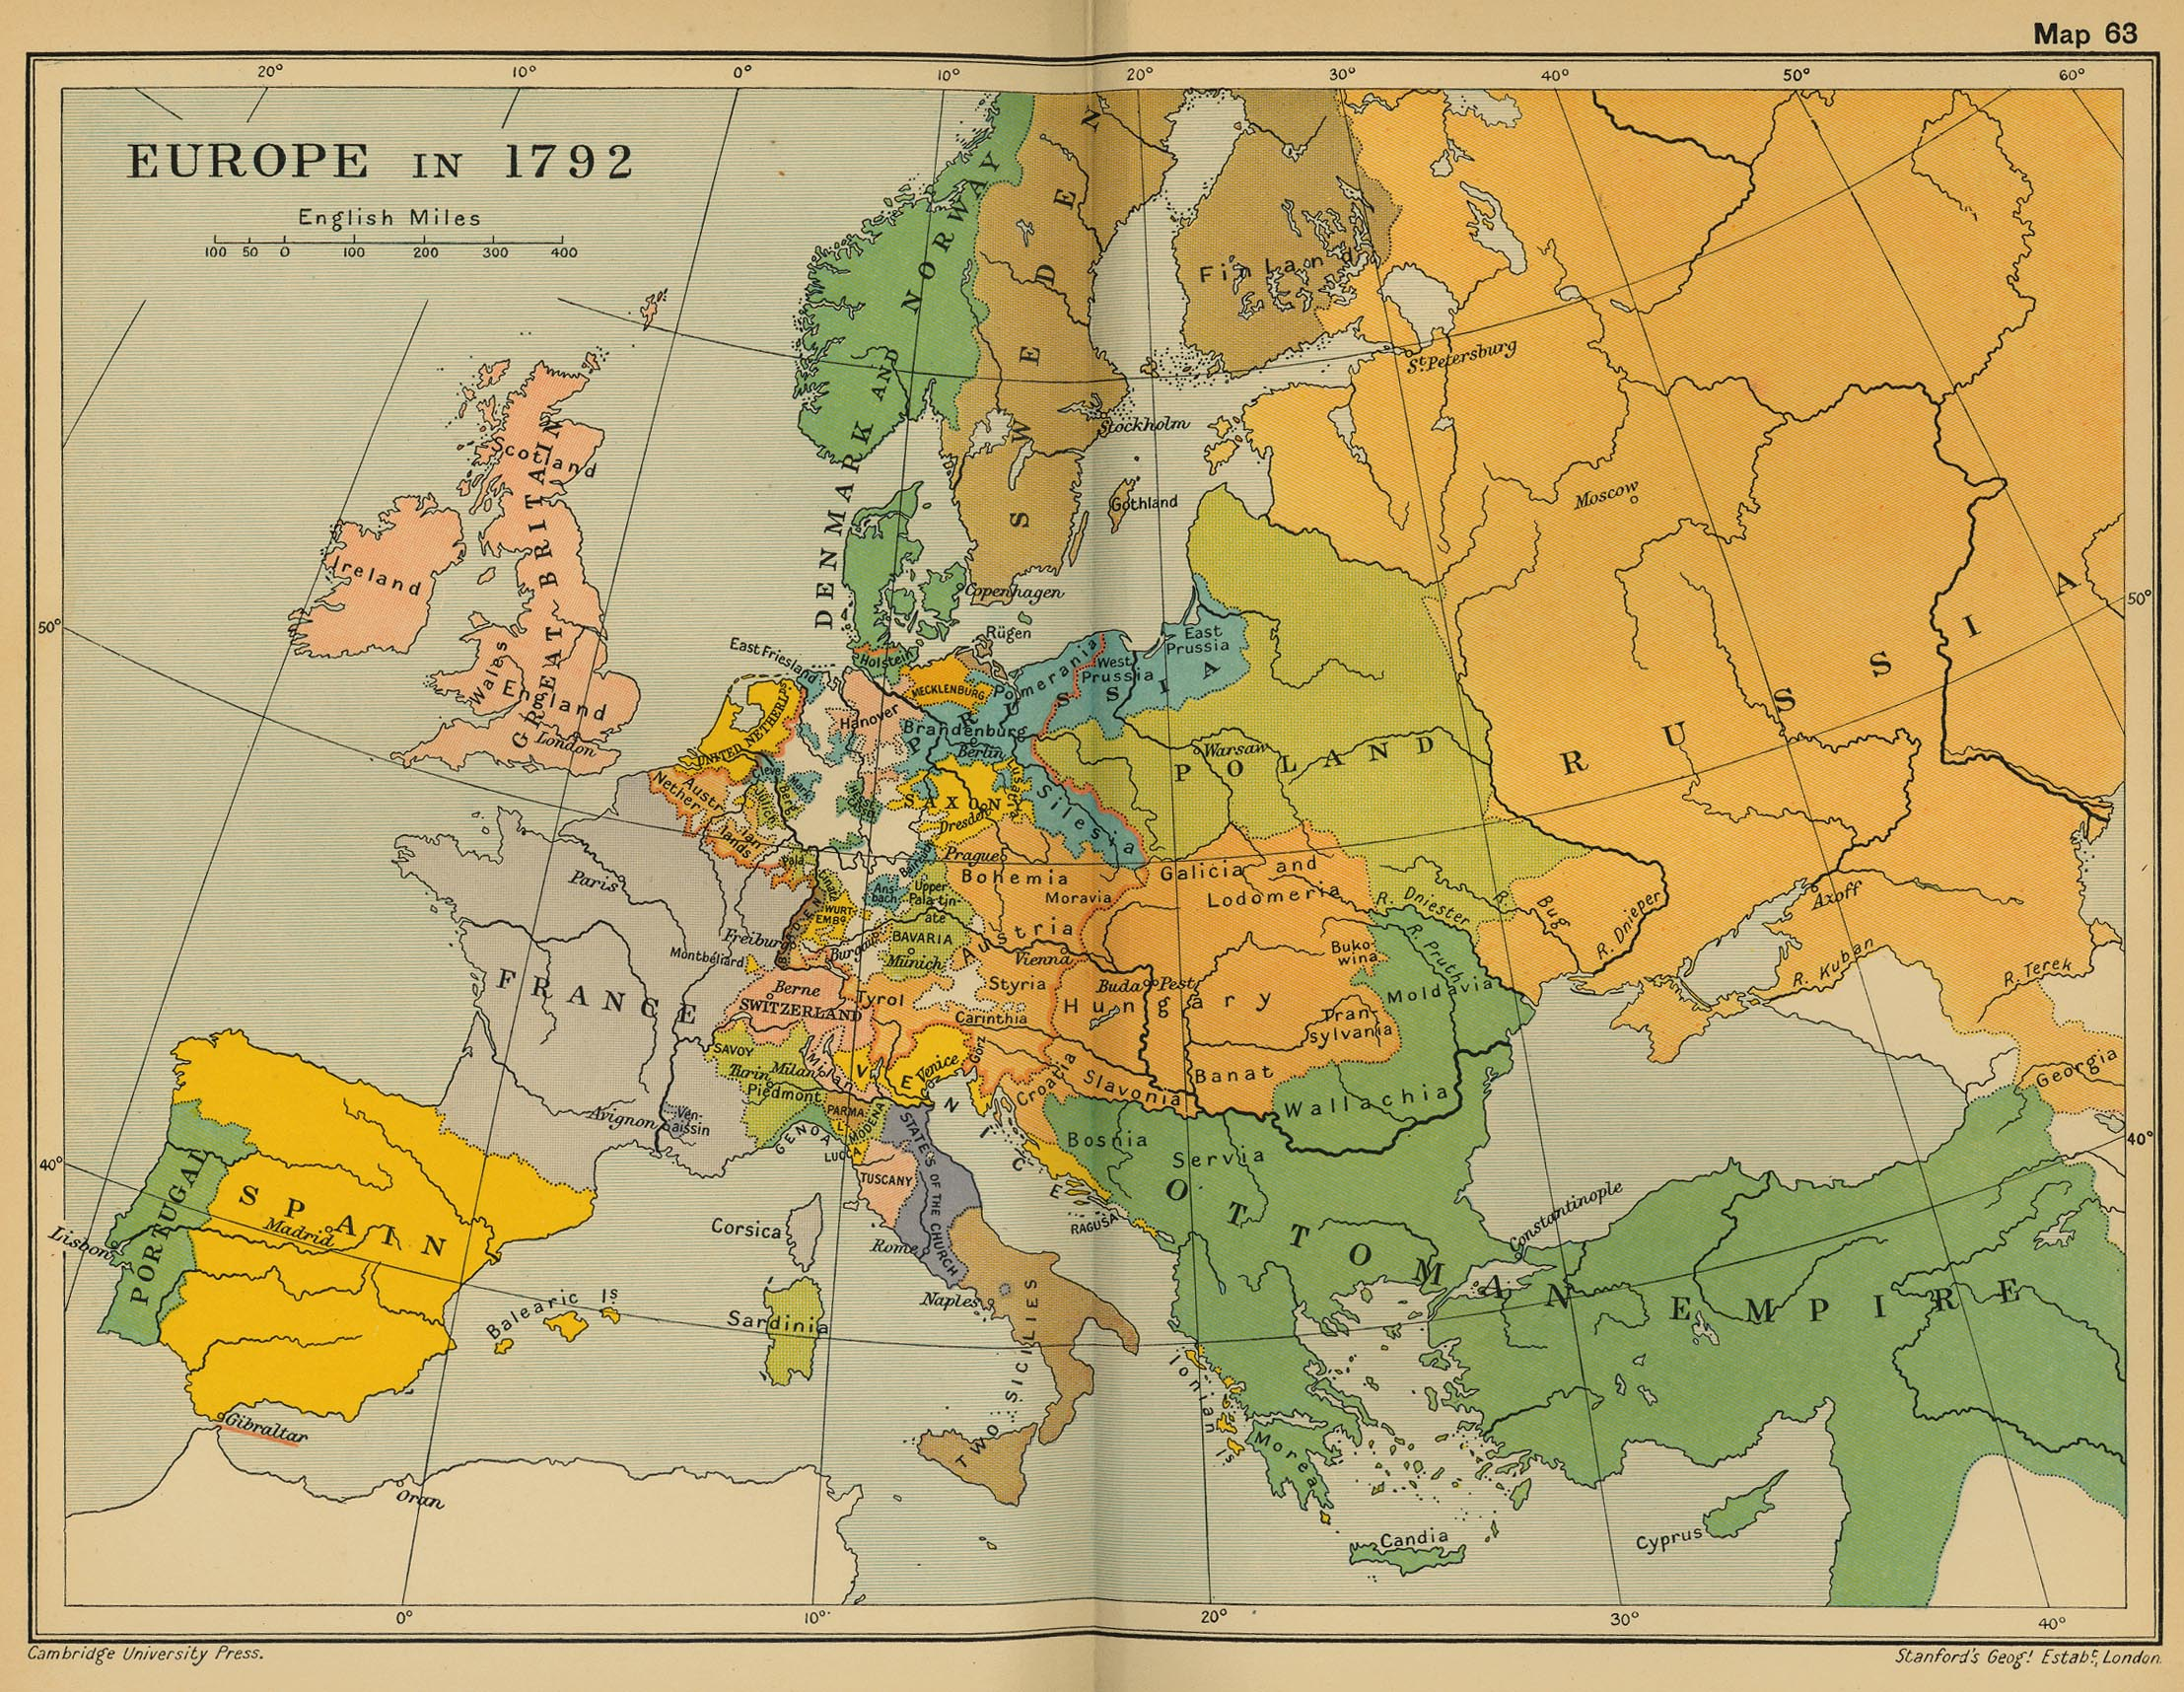 Map of Europe in 1792